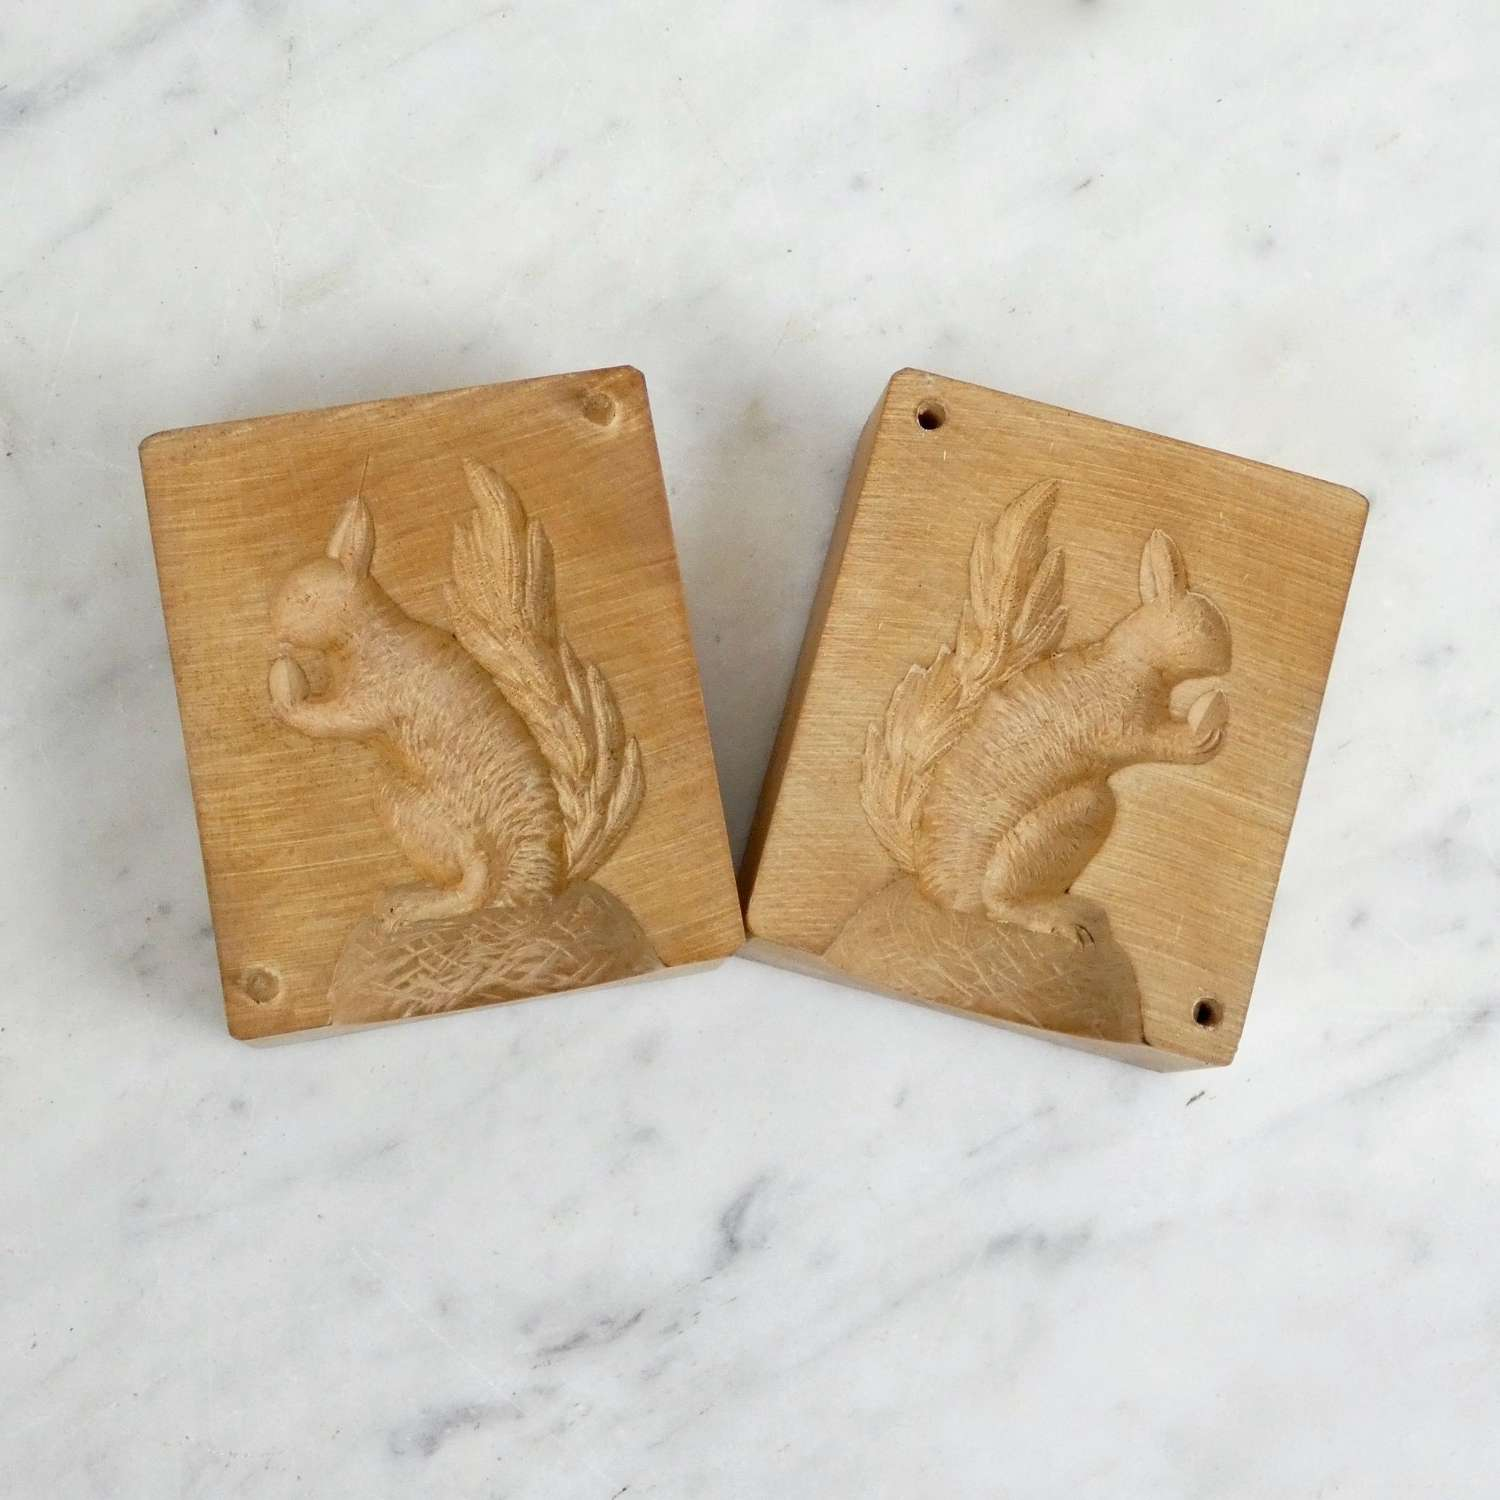 Butter mould carved with a squirrel